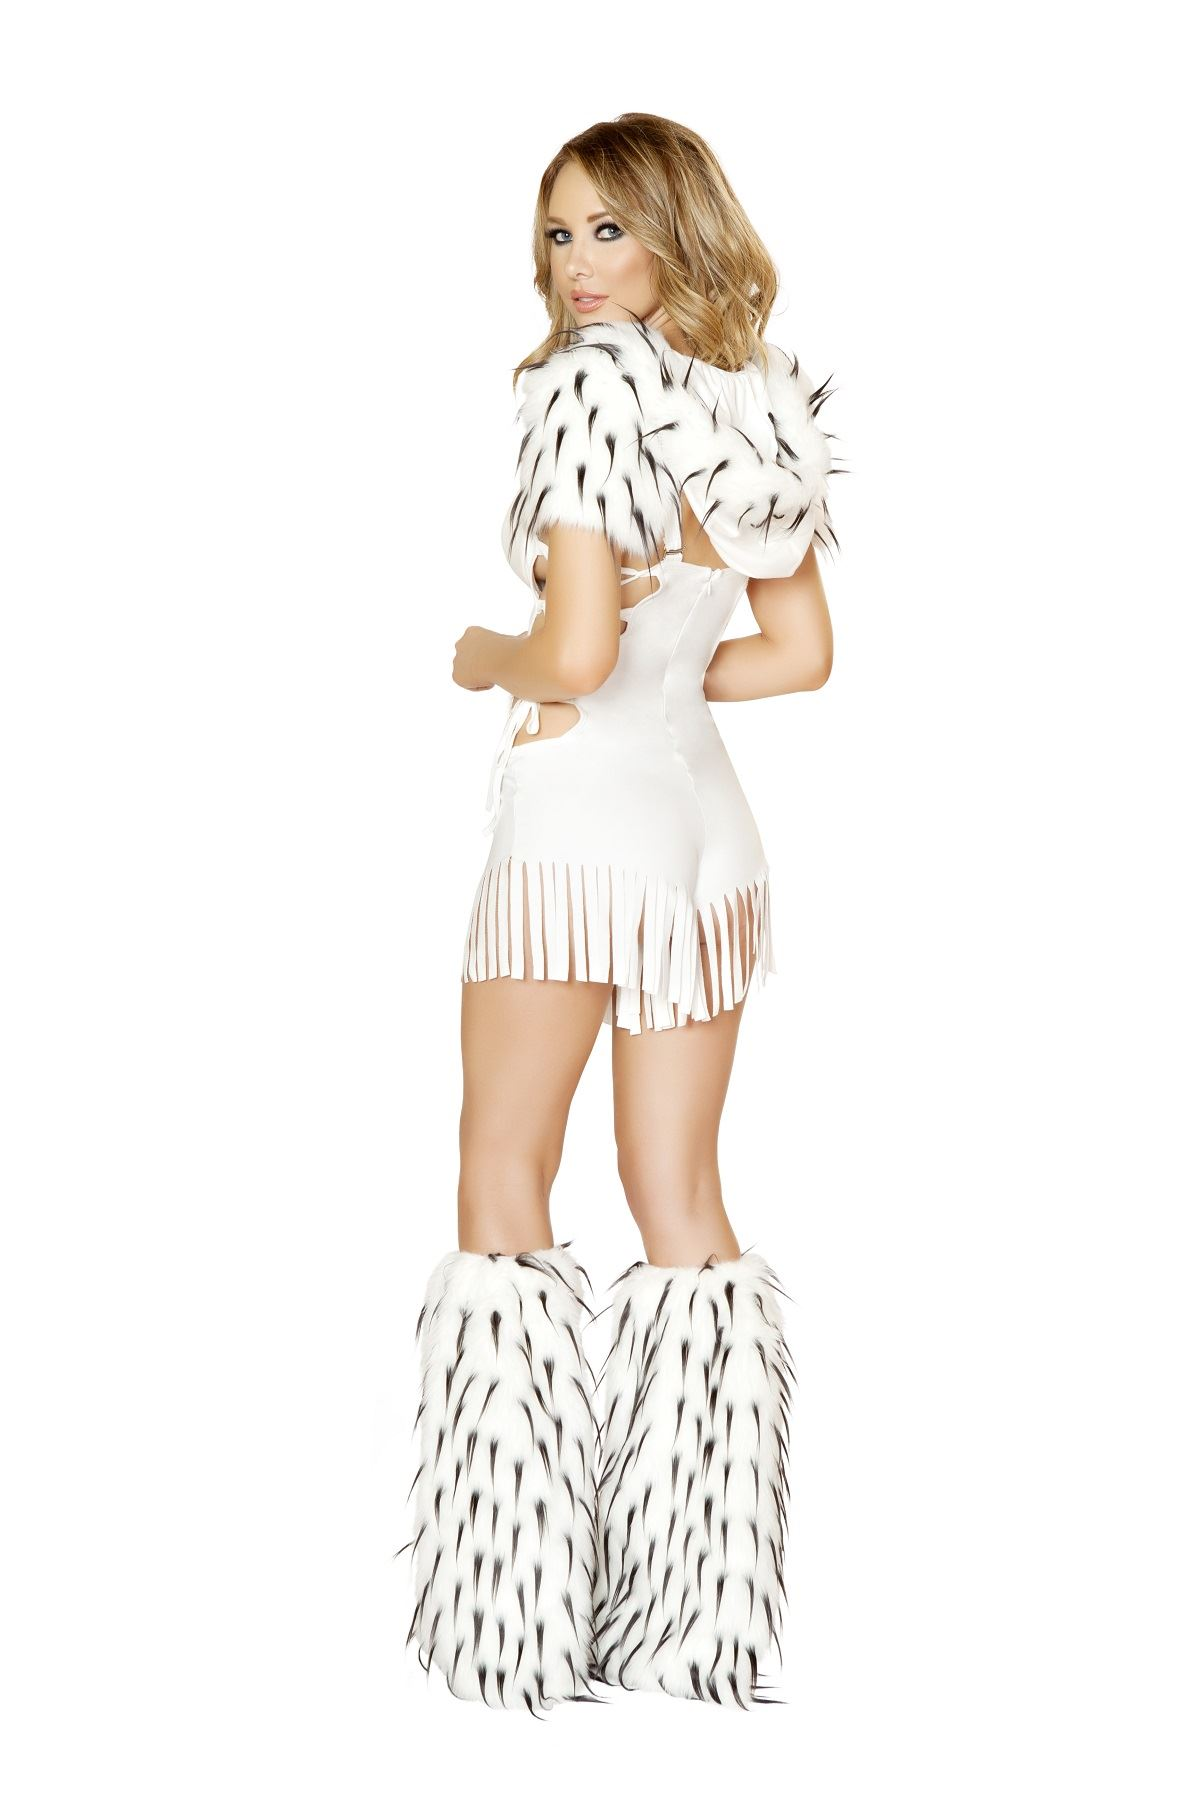 native american indian women spirit costume 86 99 the